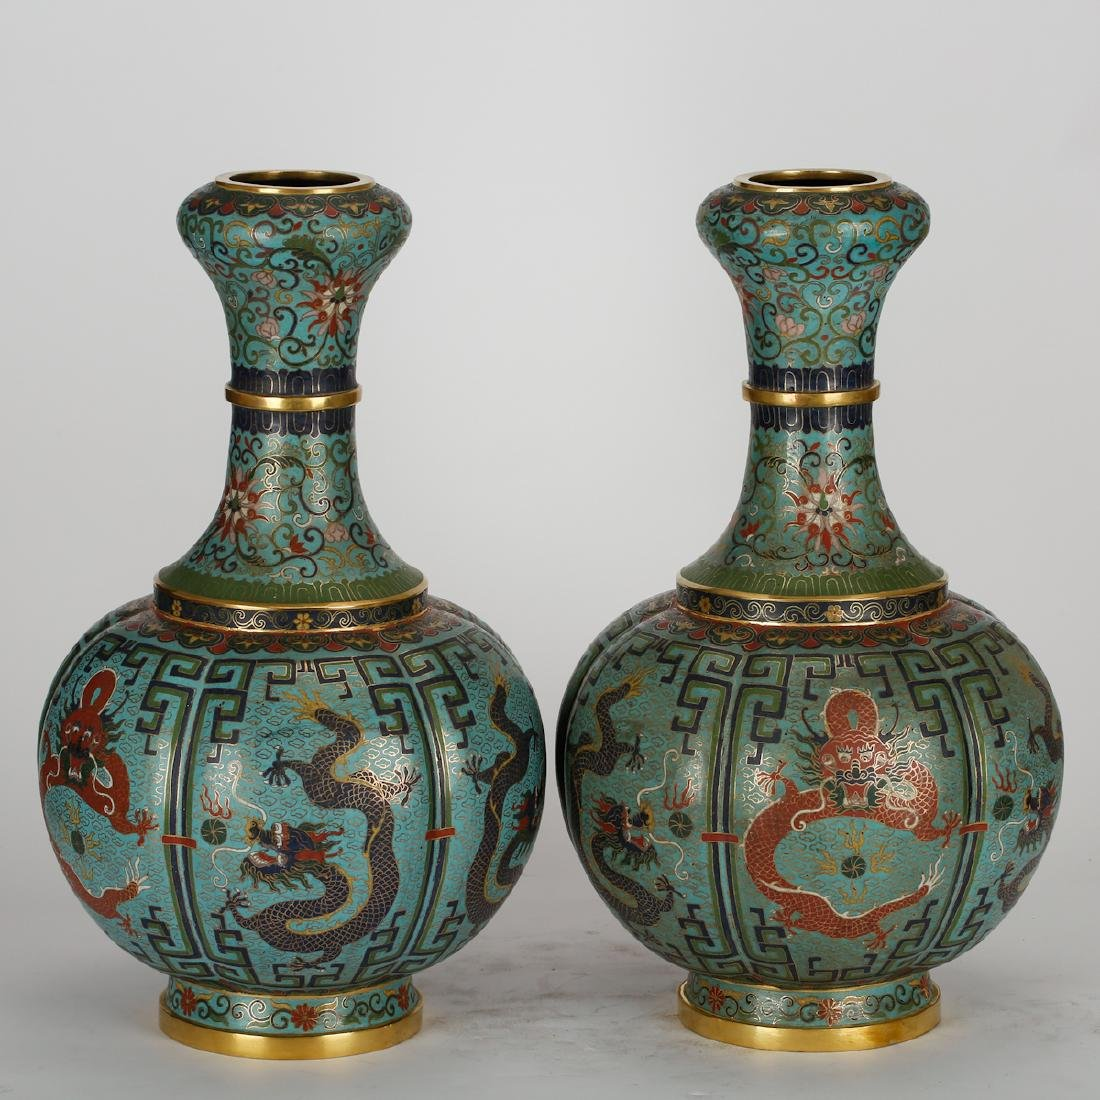 CHINESE CLOISONNE DRAGON VASES, PAIR